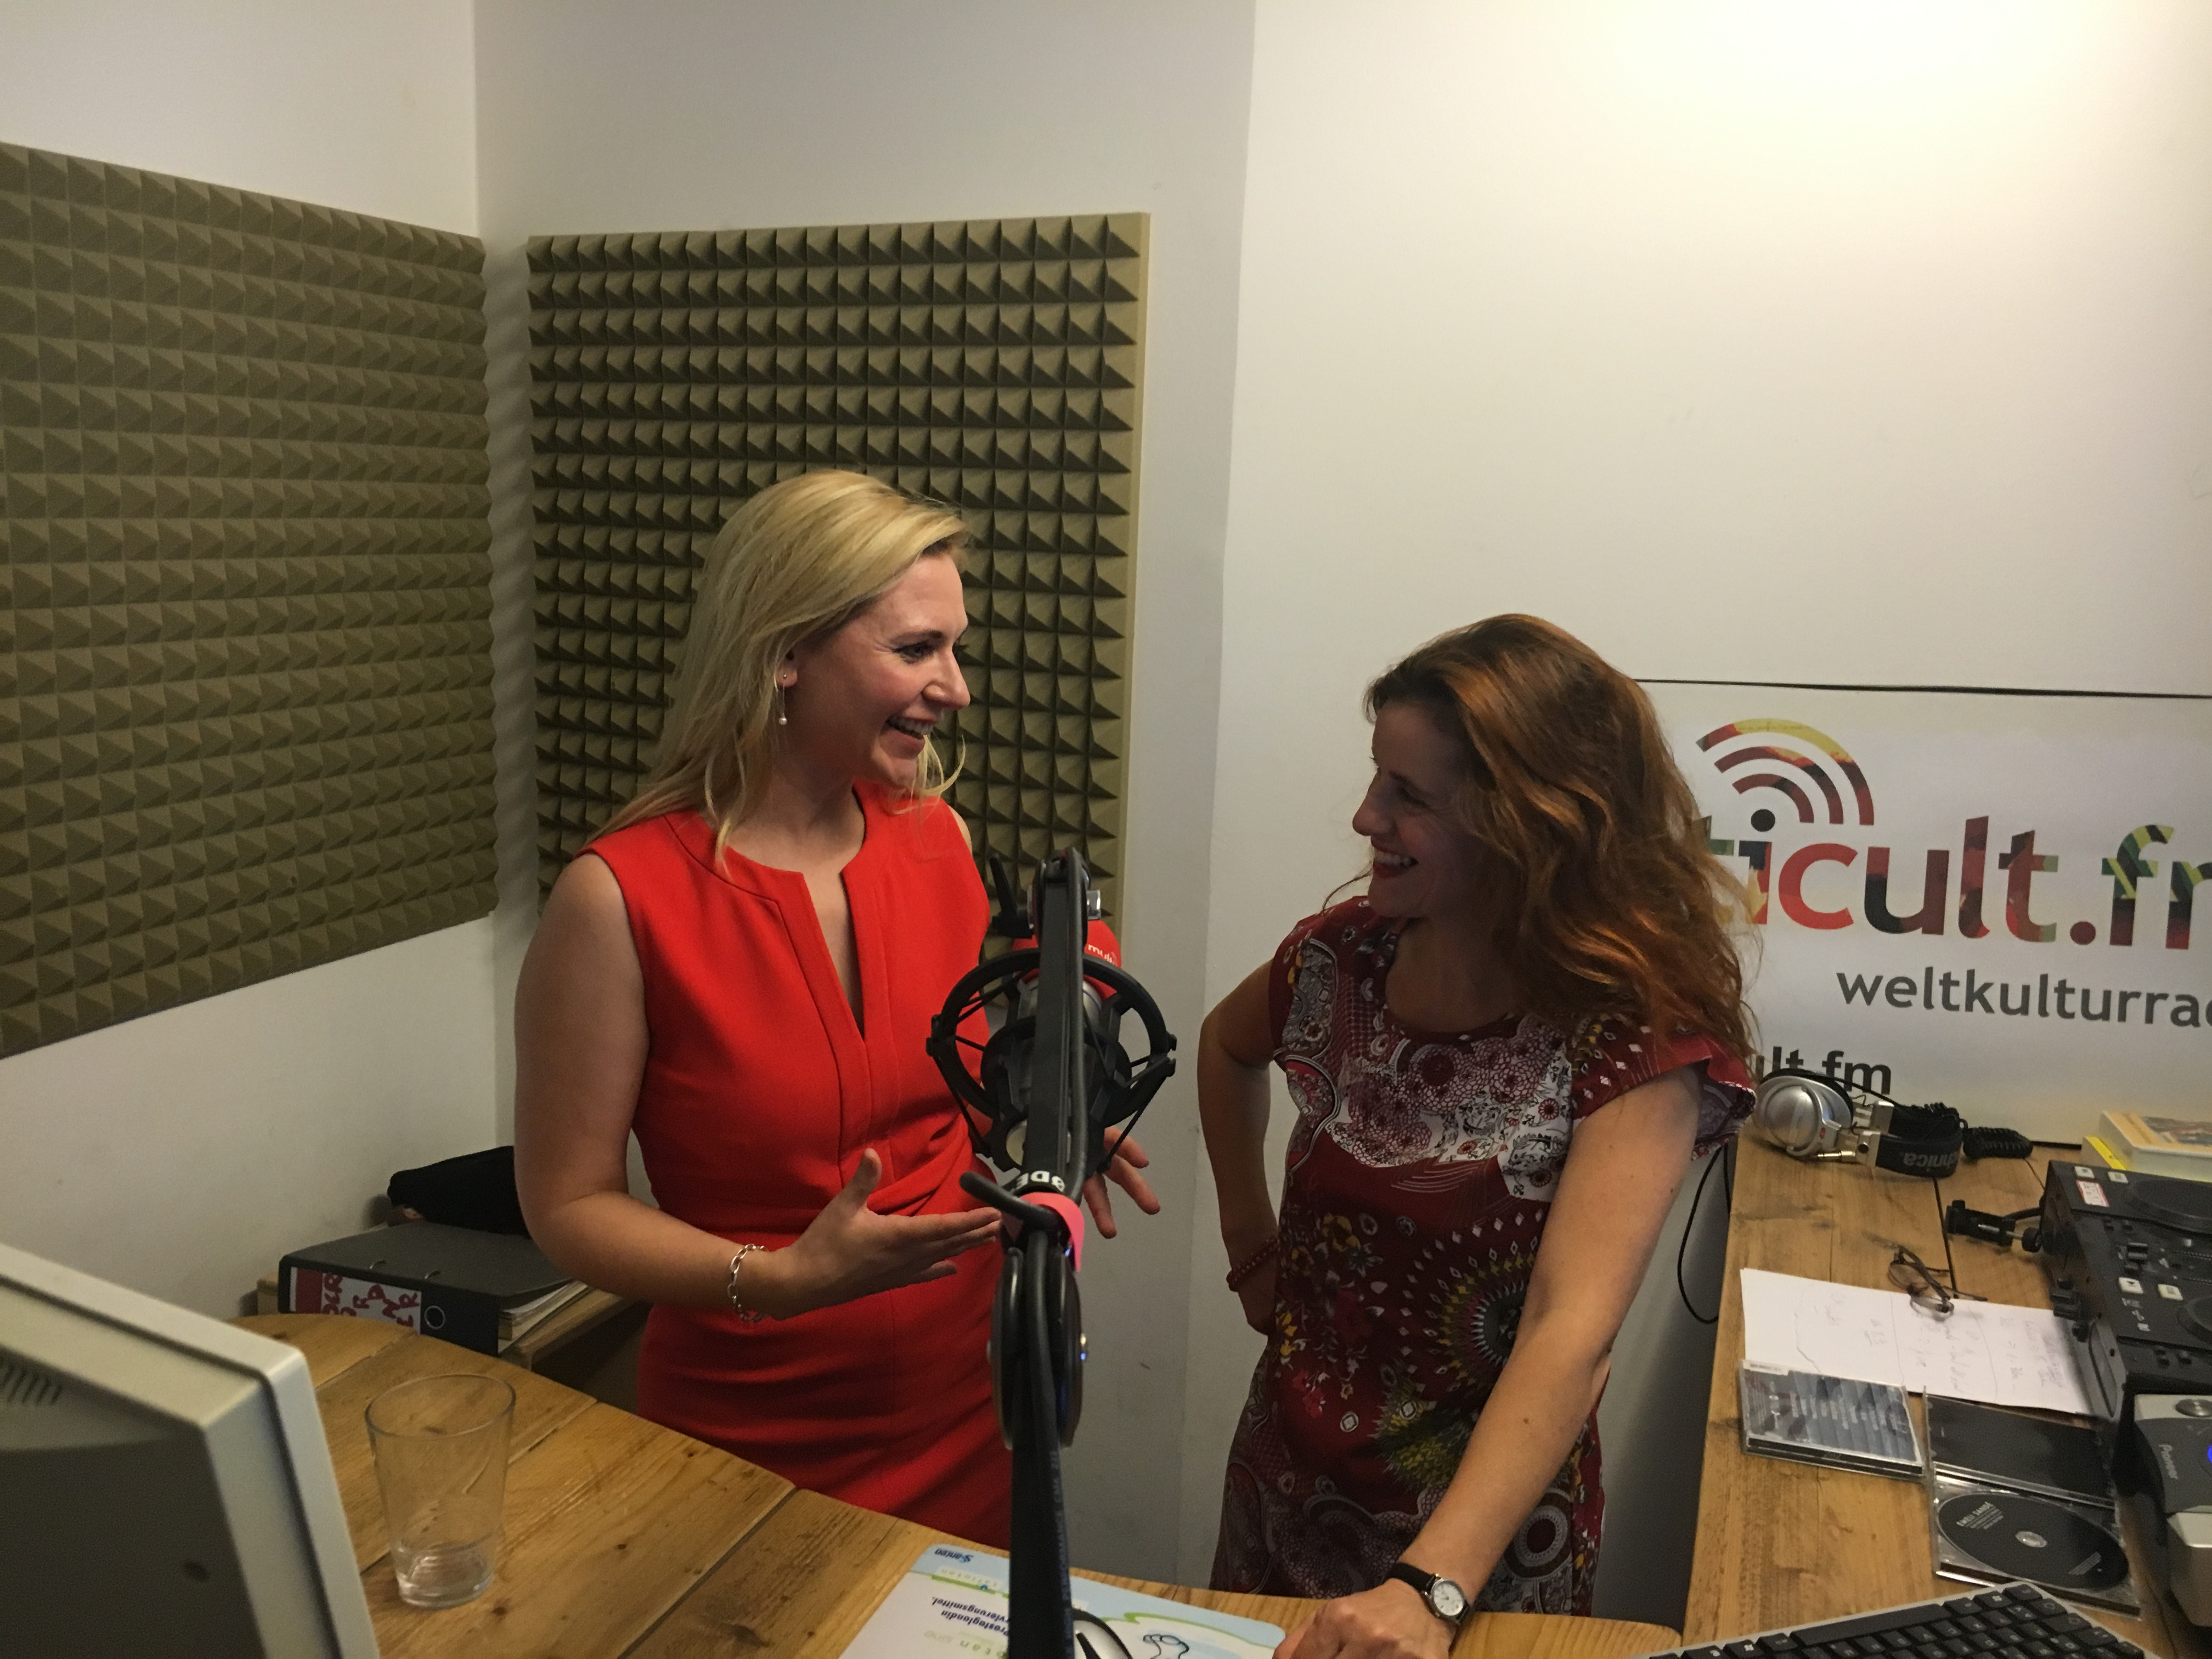 Radio: Sandra Pabst talks about Fempreneurship